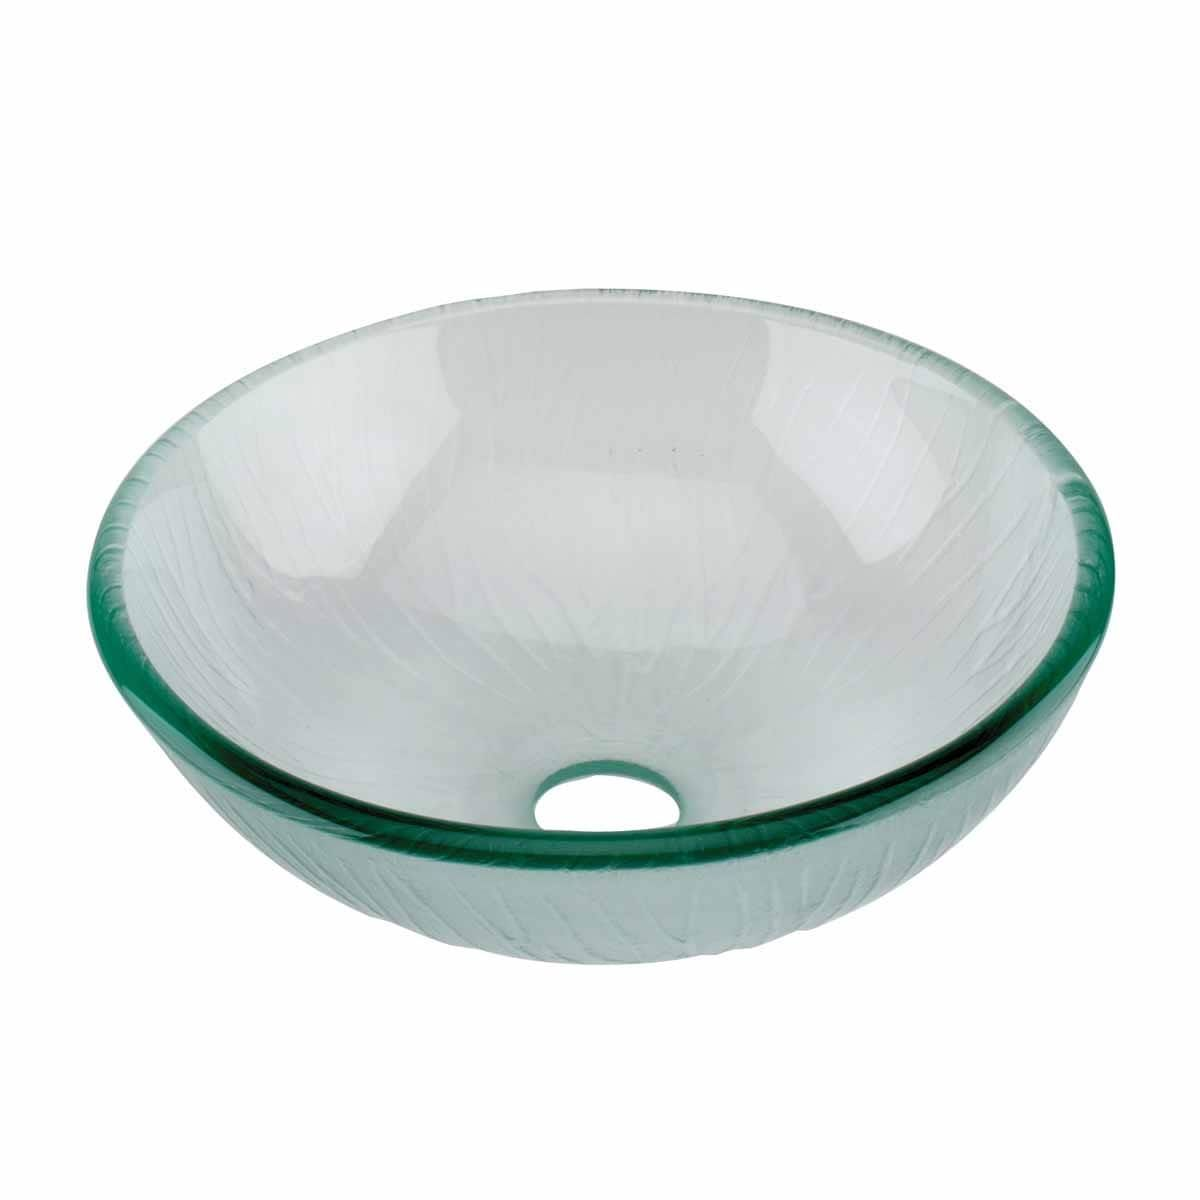 Mini tempered glass vessel sink with drain frosted green textured